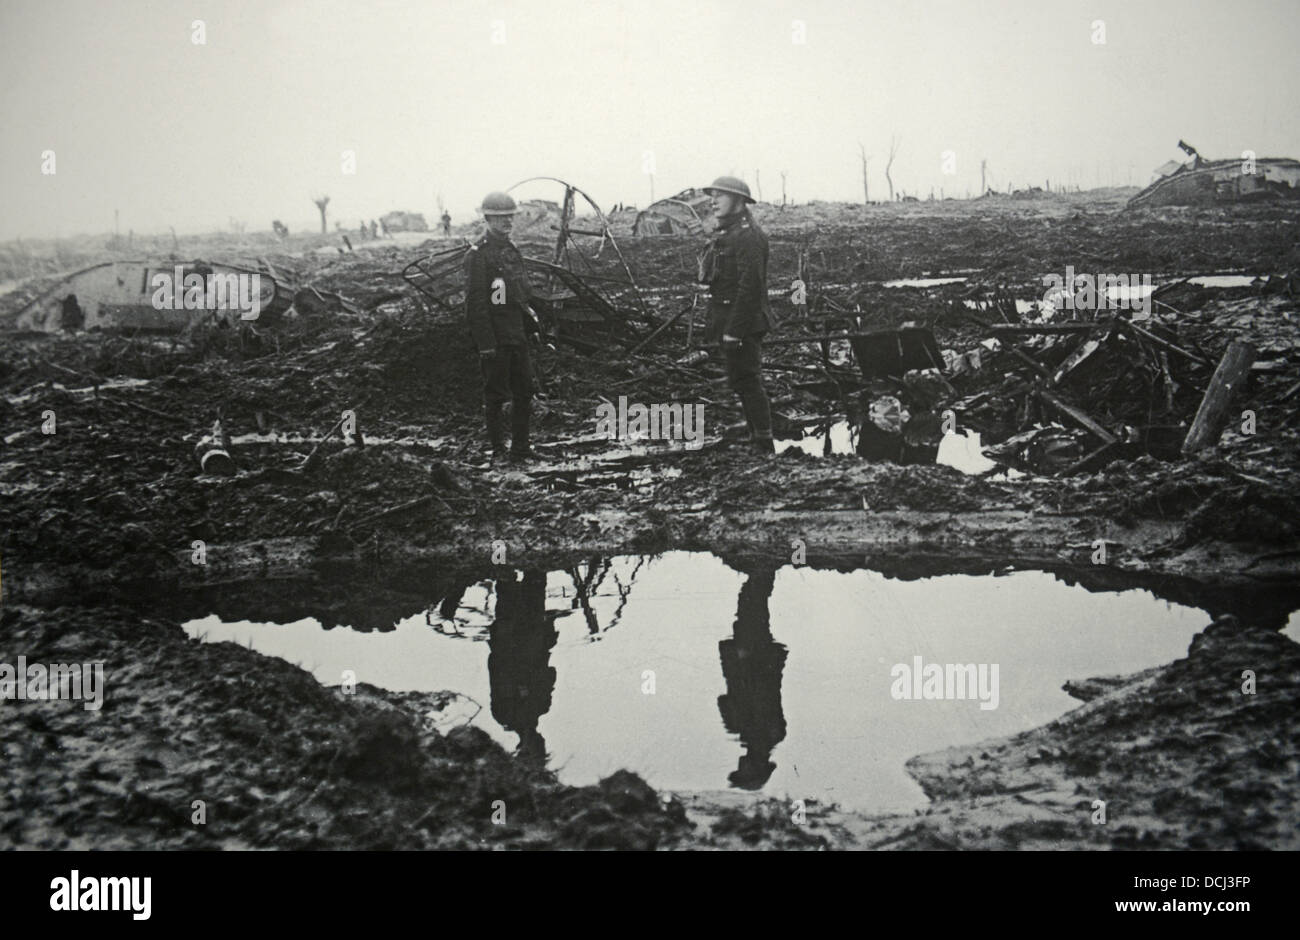 First World War trenches with abandoned tanks on the battlefield - Stock Image